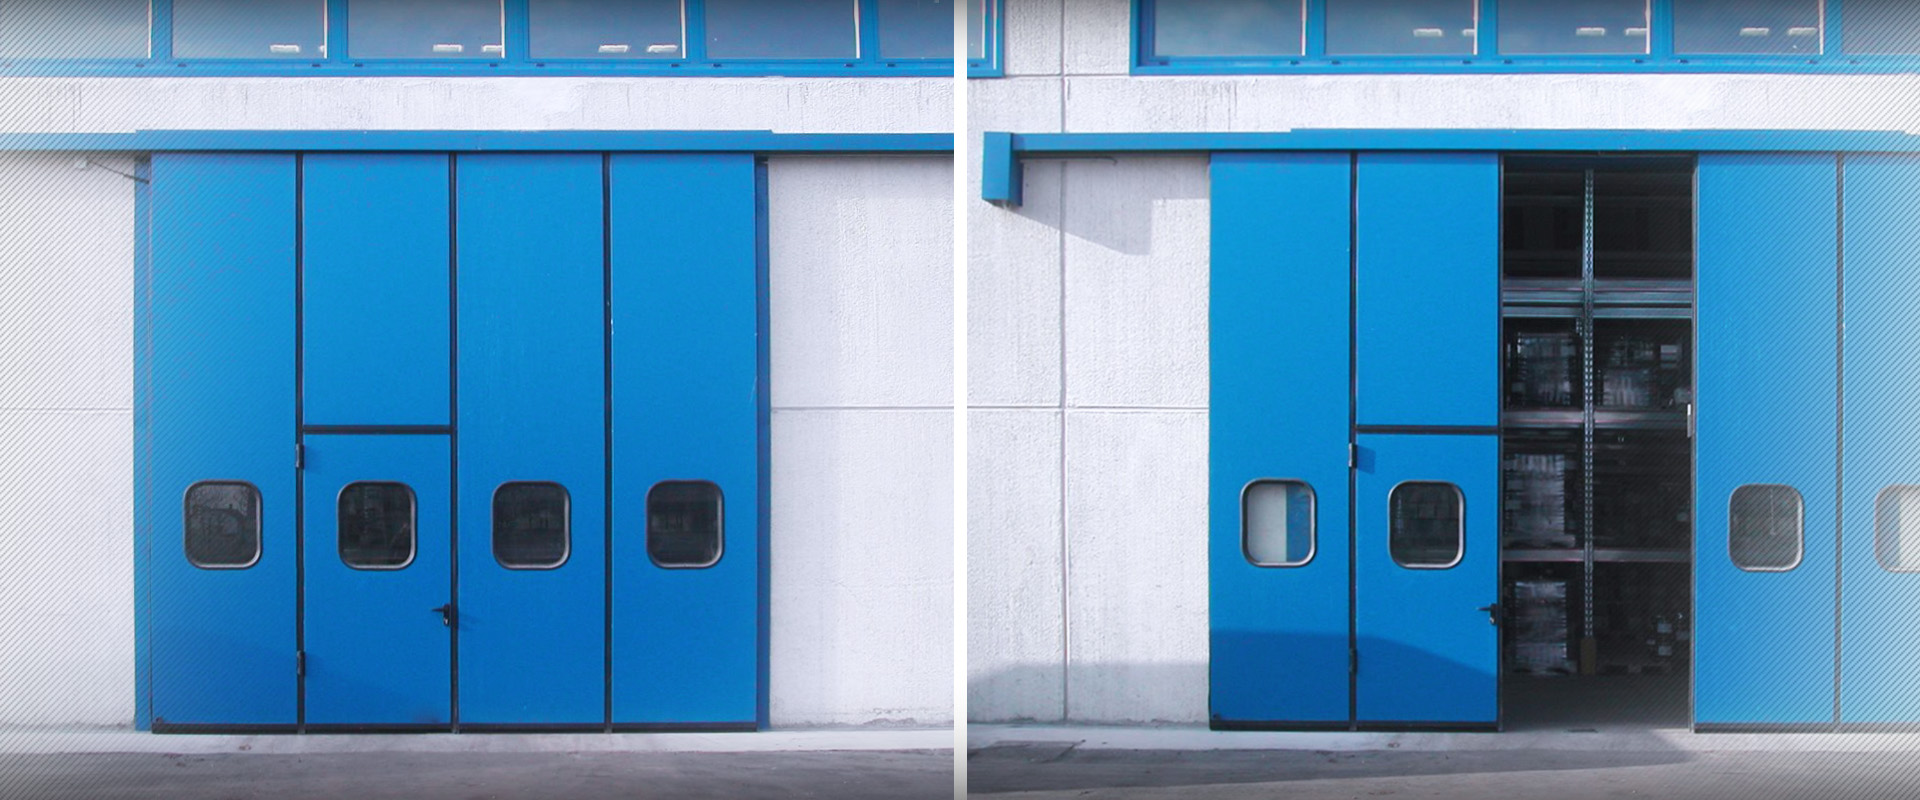 Industrial sliding door IMVA 10.jpg